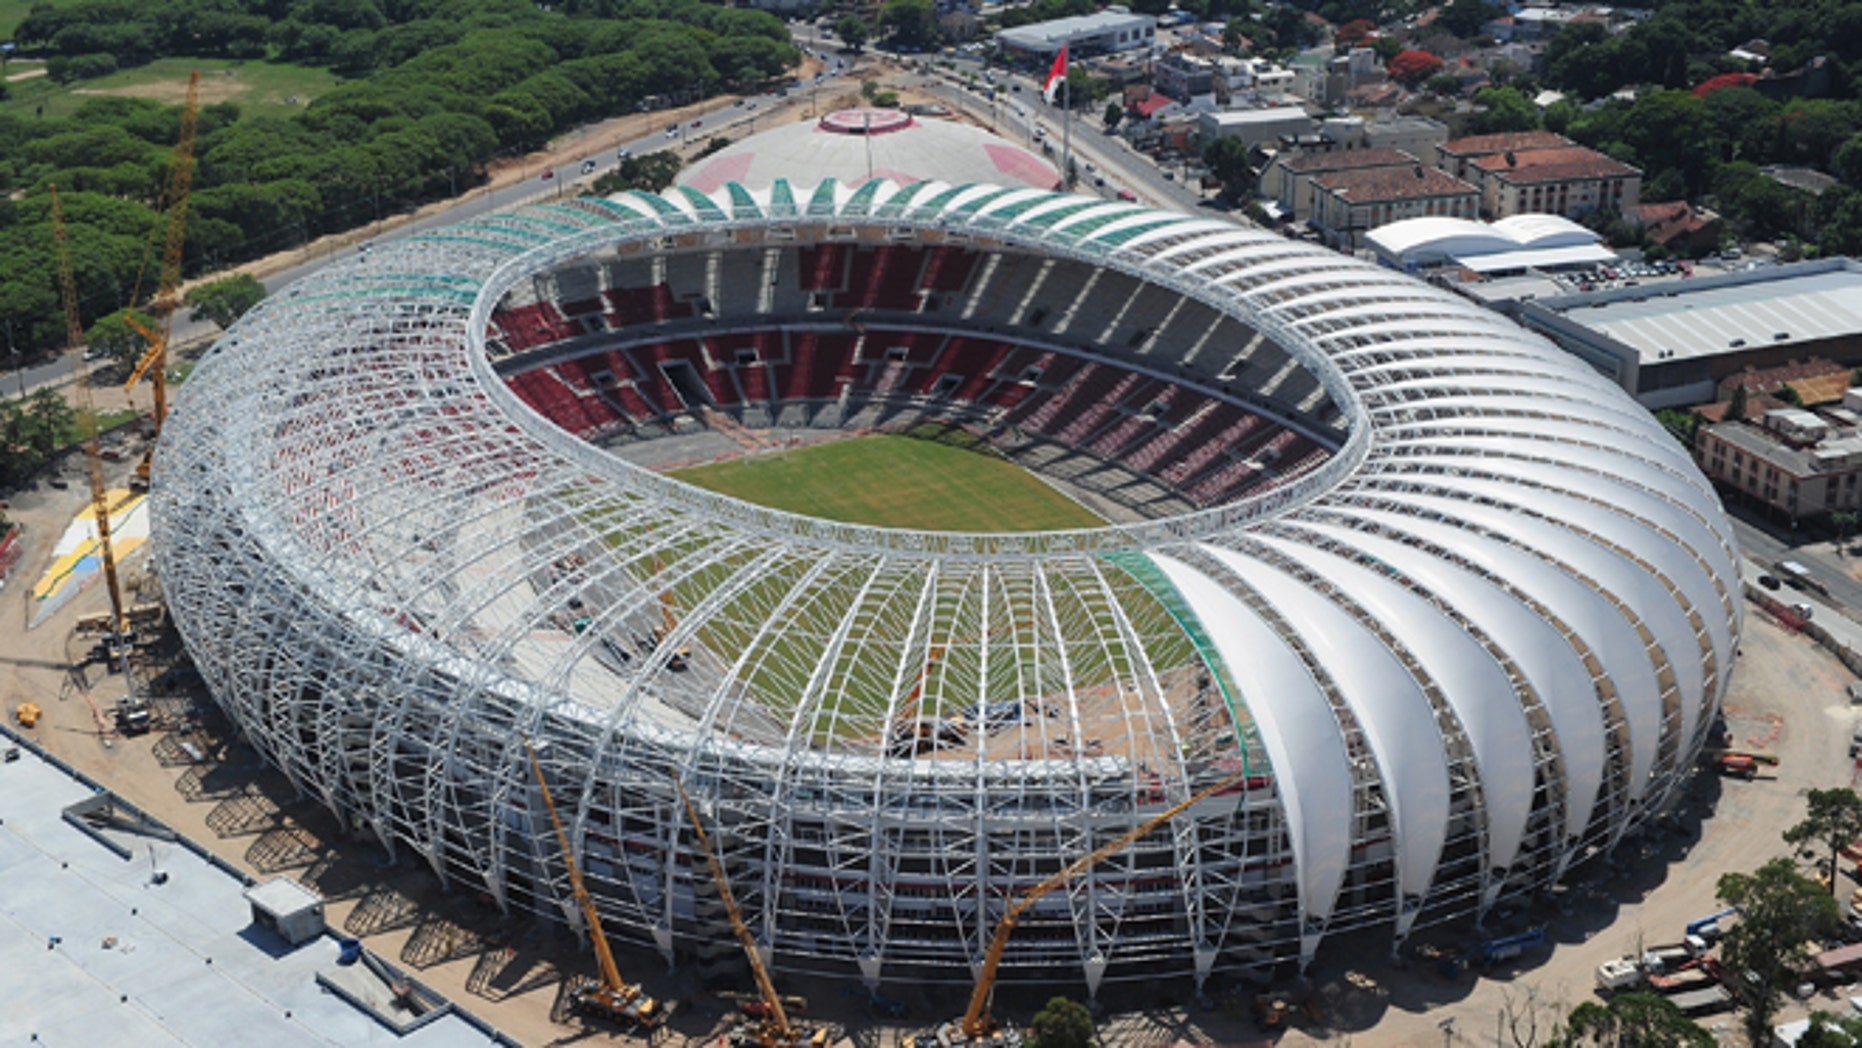 PORTO ALEGRE, BRAZIL - DECEMBER 15:  An aerial view of the Beira Rio stadium venue for the FIFA 2014 World Cup Brazil on December 15, 2013 in Porto Alegre, Brazil.  (Photo by Shaun Botterill/Getty Images,)